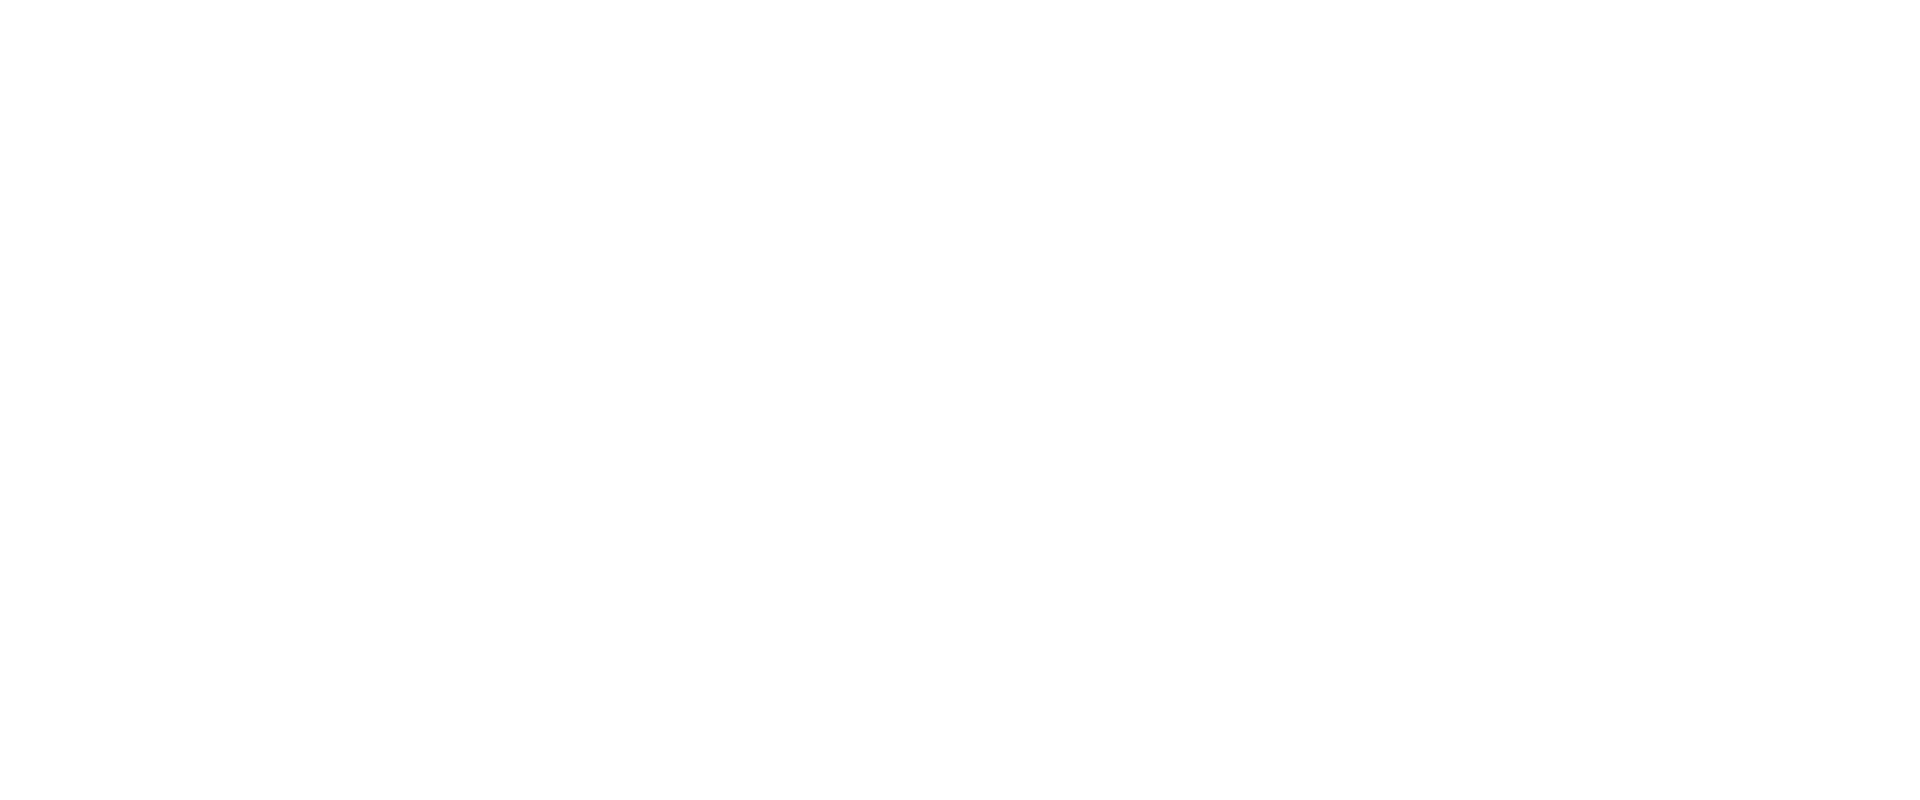 Google-review-white